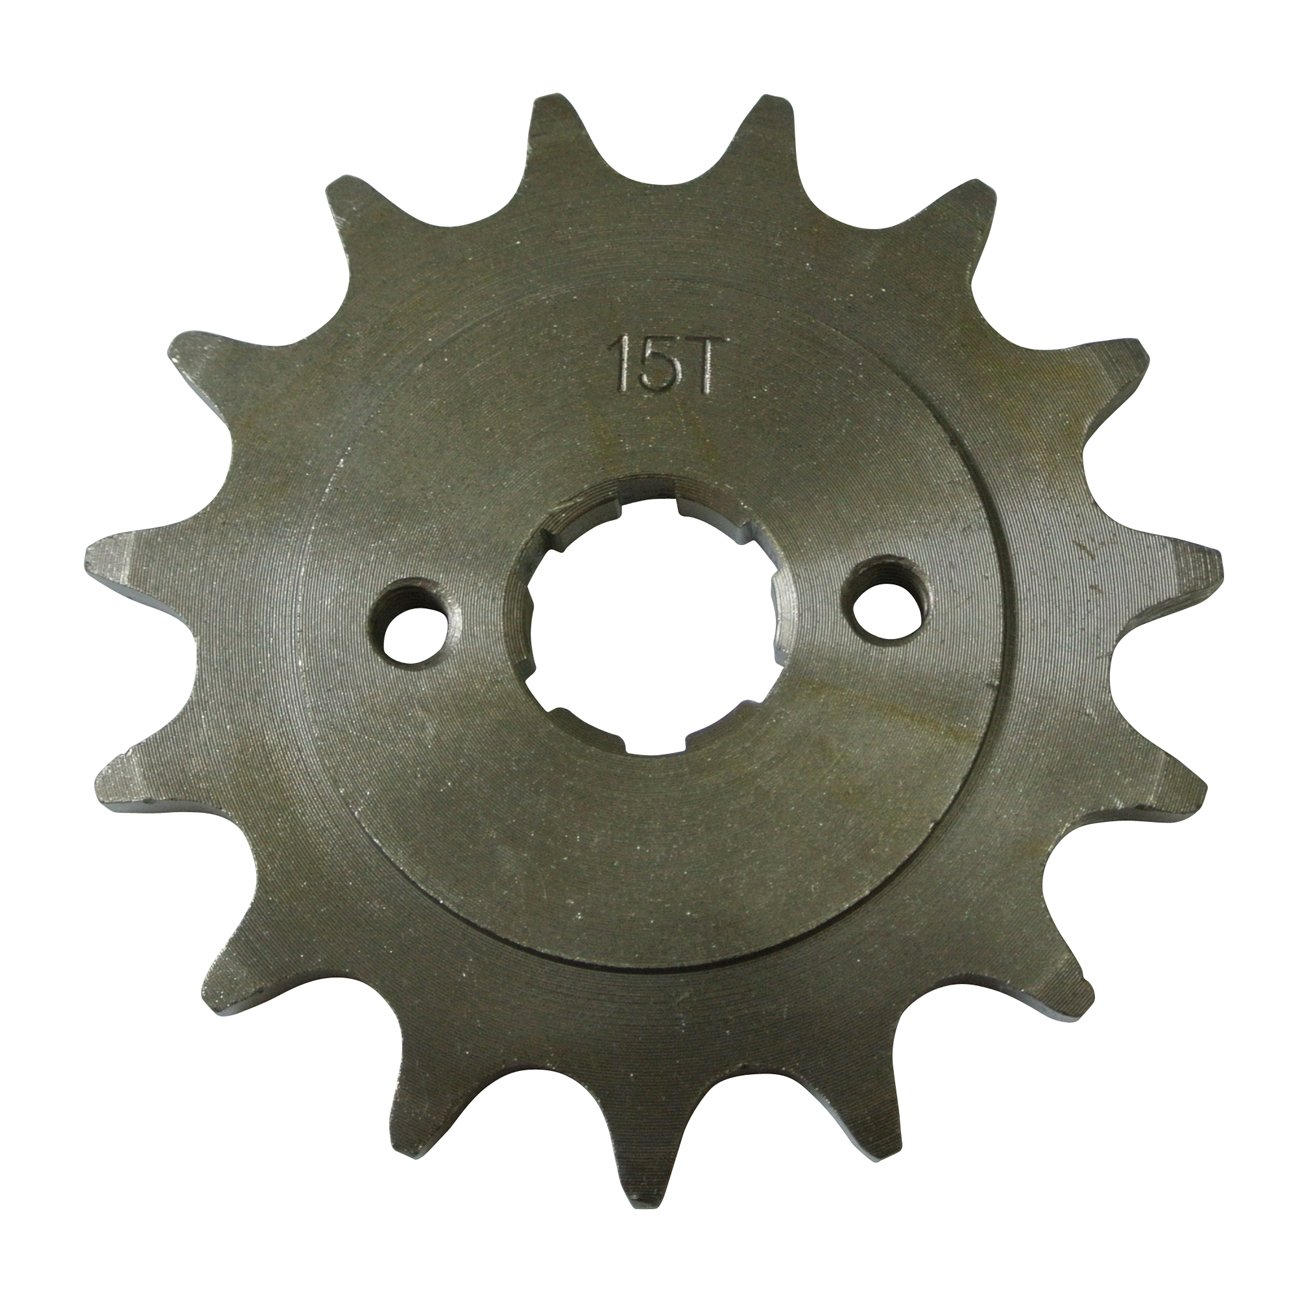 UAUS 520 14T 20mm ENGINE SPROCKET FOR ATV HONDA DIRT BIKE